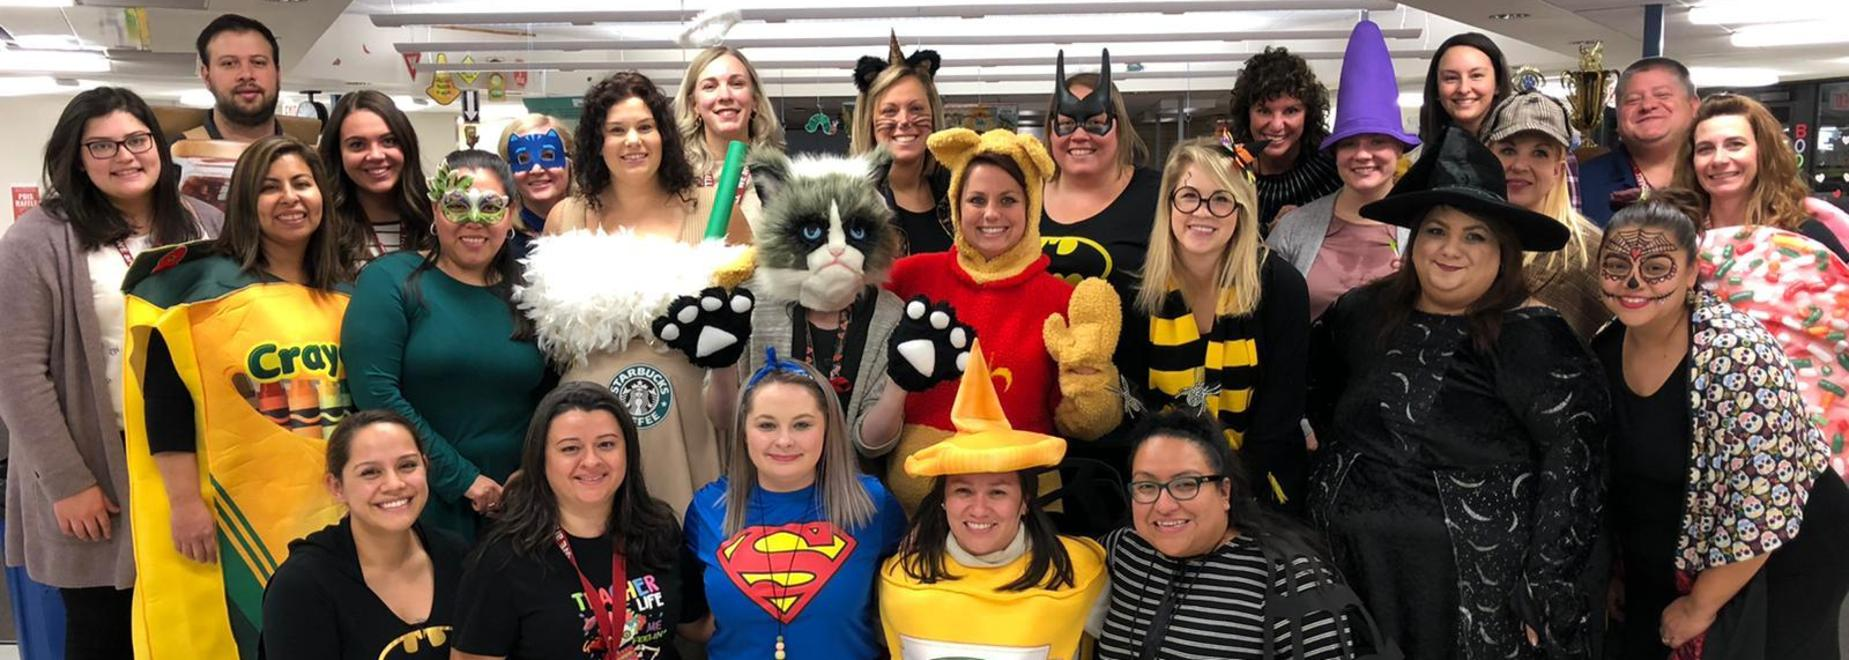 Teachers in Halloween costumes at Literacy Night